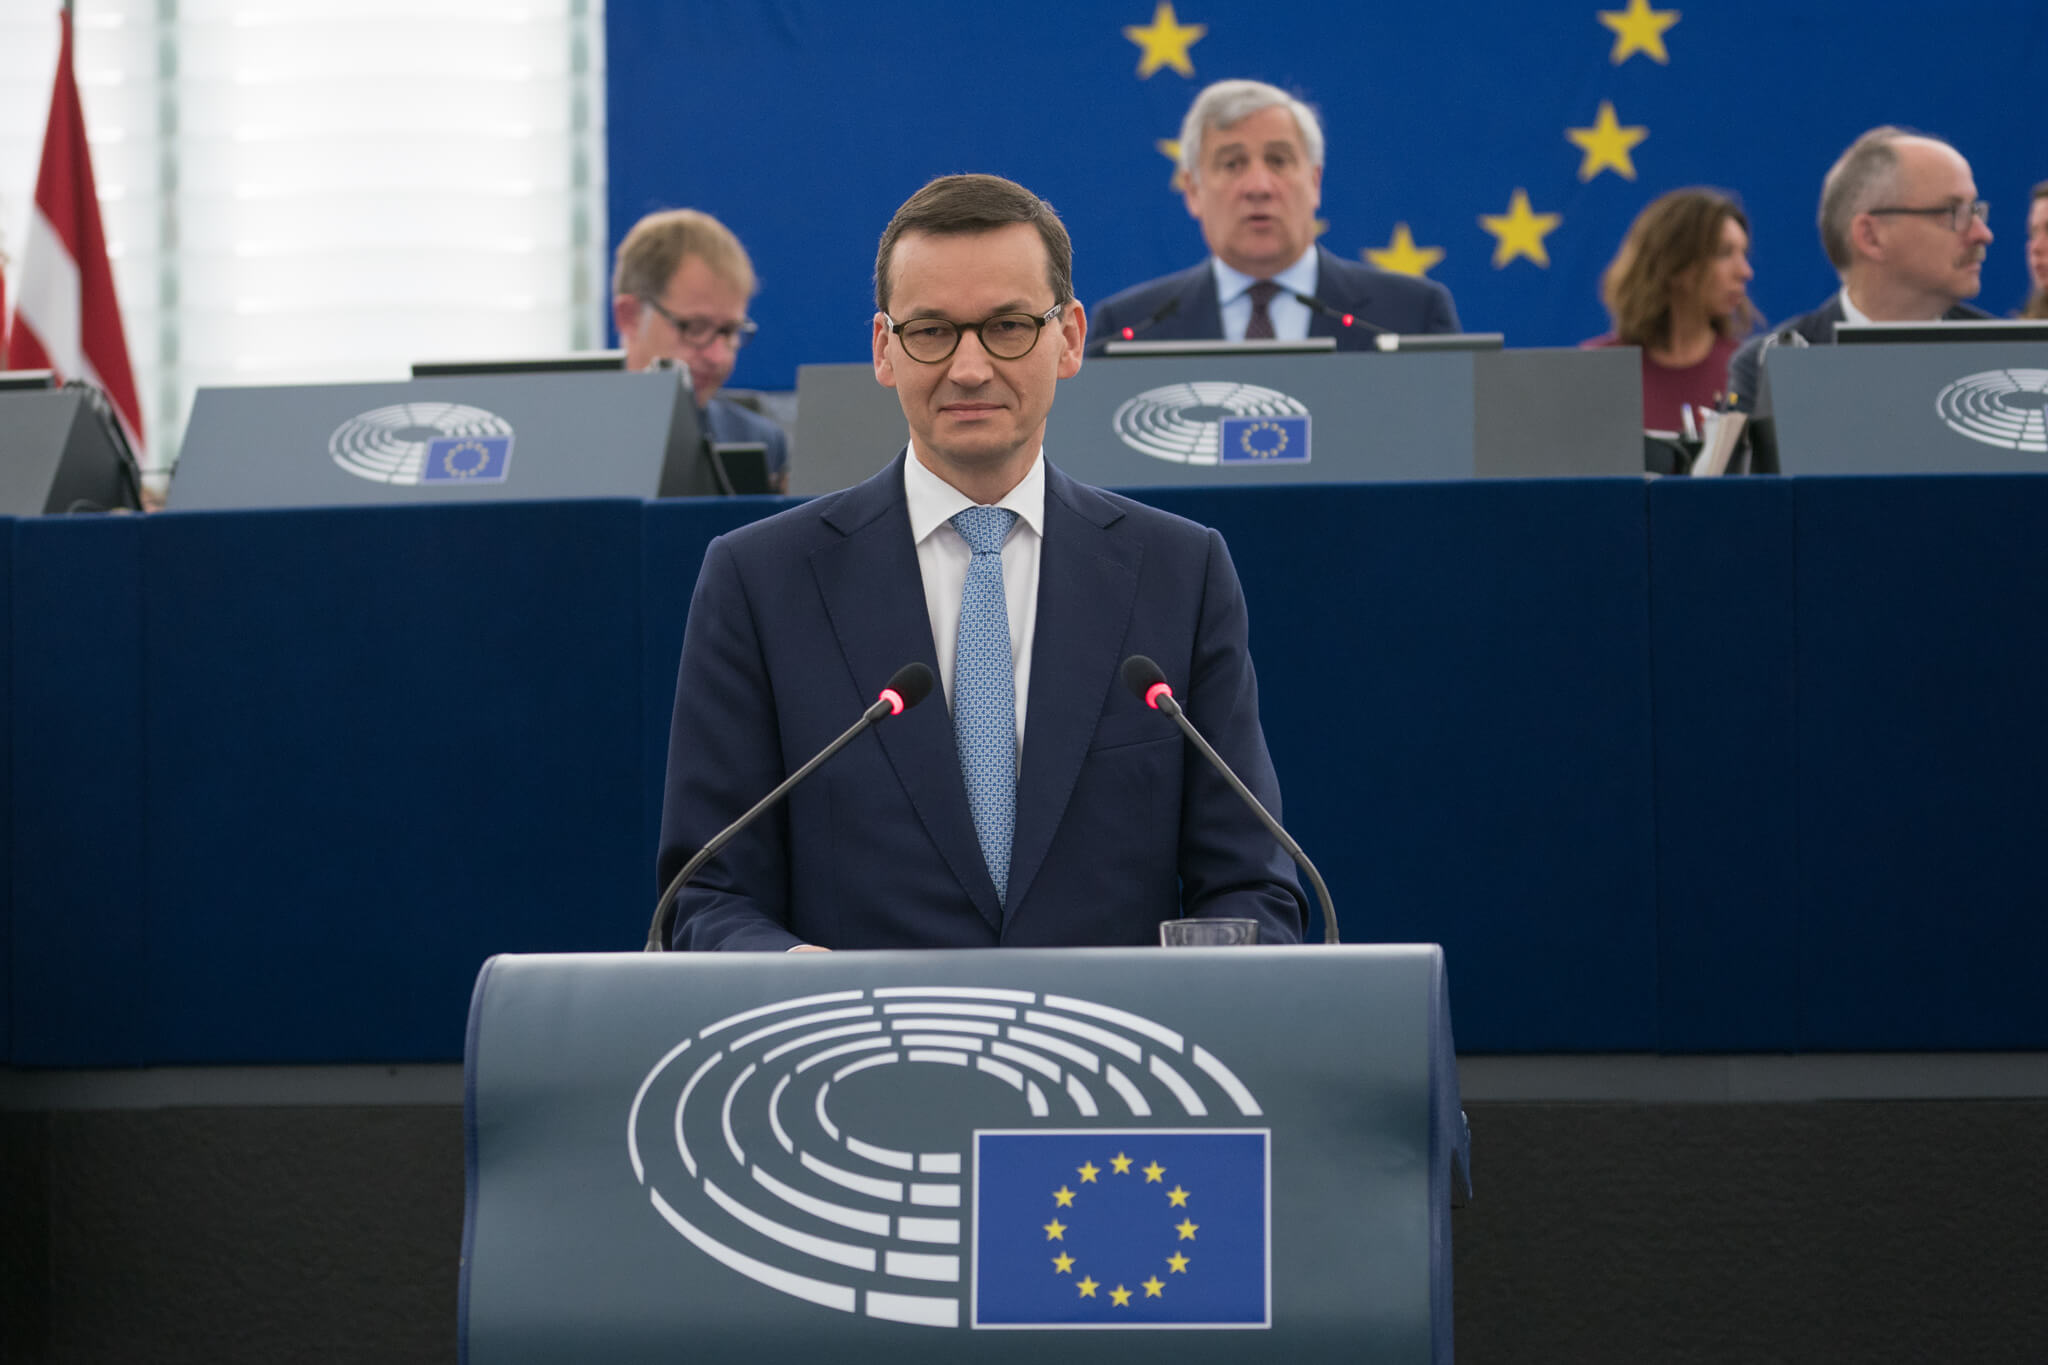 De Poolse premier Mateusz Morawiecki (links) in het Europees Parlement, 2018. © European Parliament - Flickr (2)